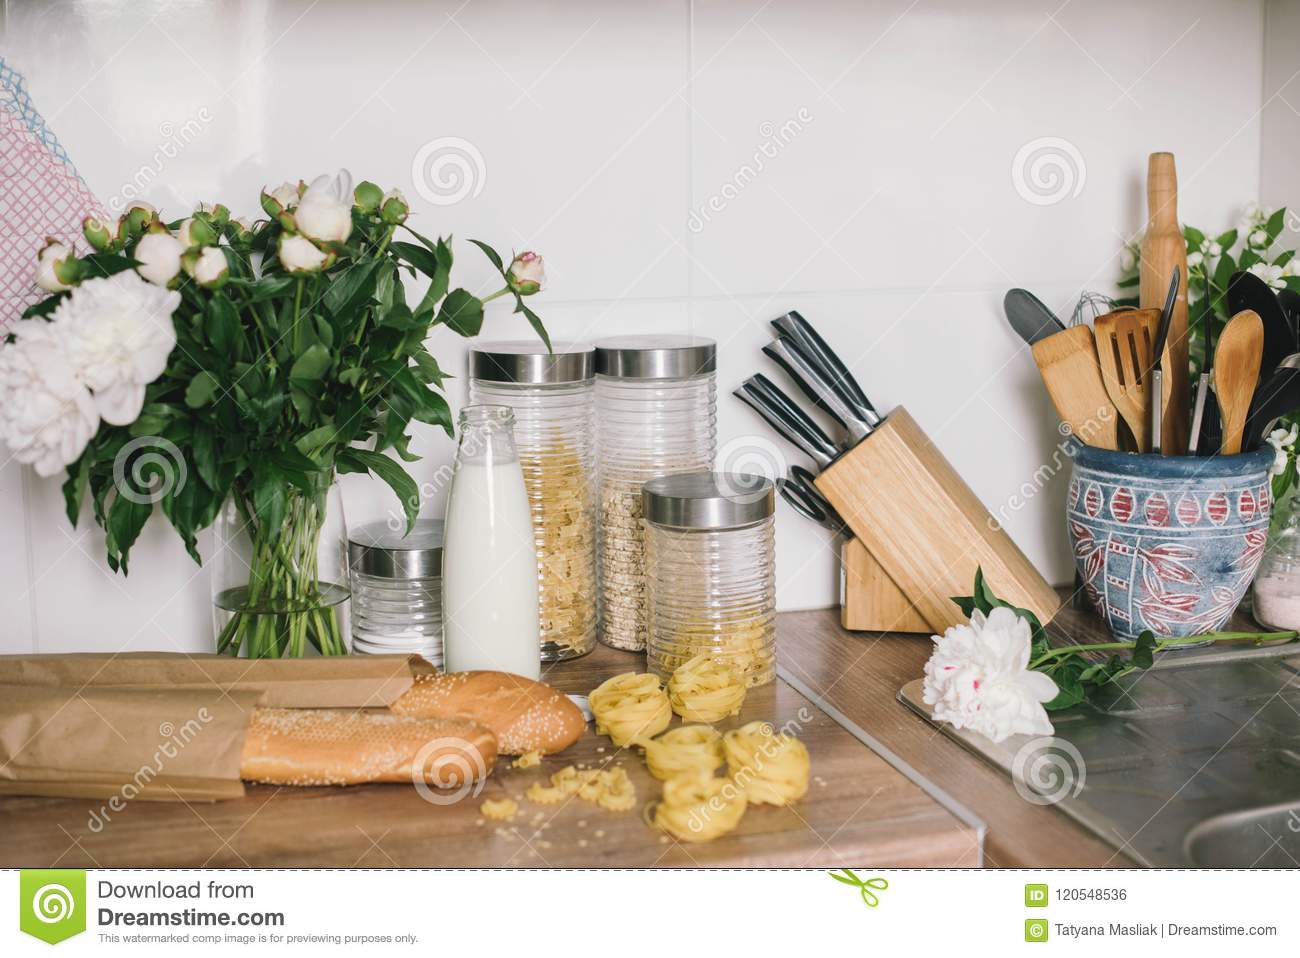 White tiles wall modern kitchen with chopping board,flowers,knifes,pasta,bread.